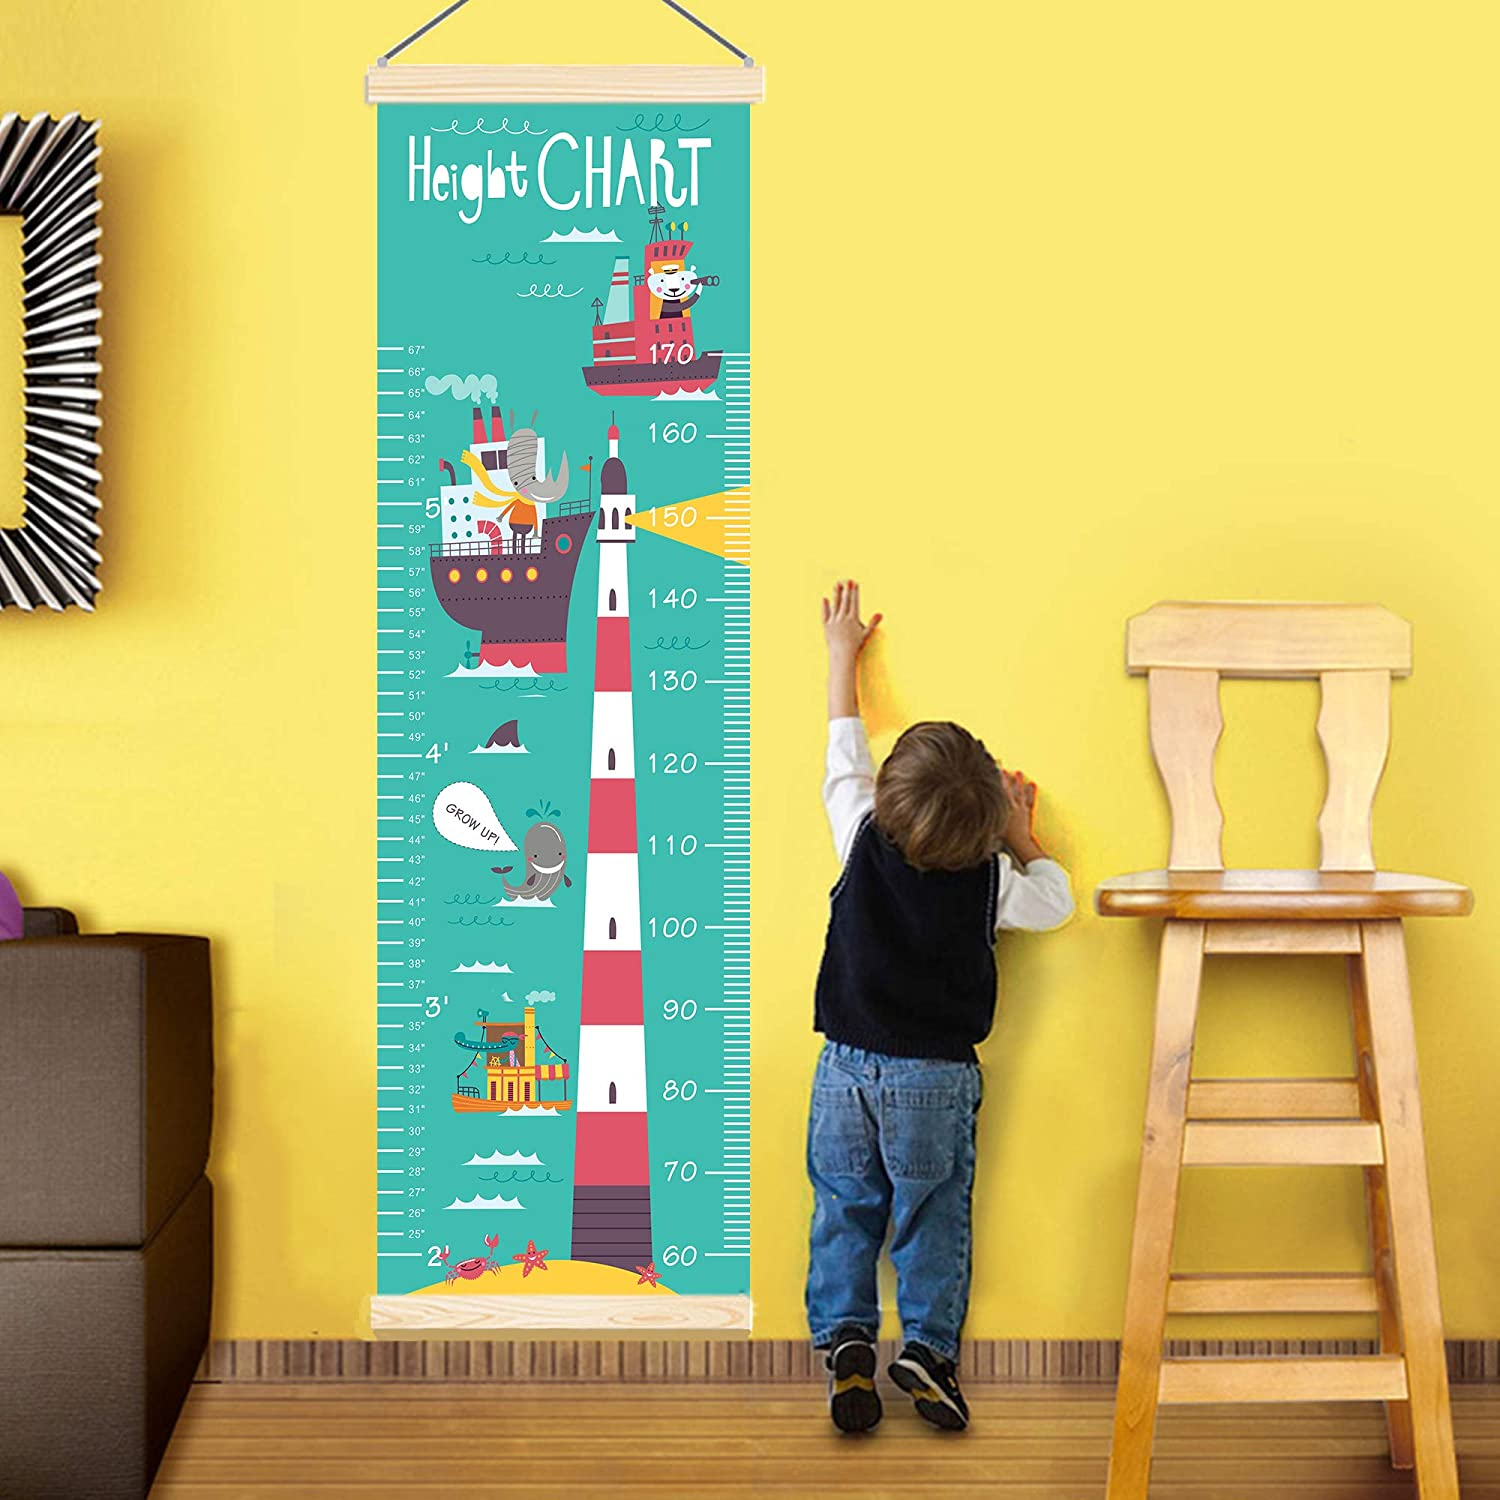 JYCRA Baby Growth Chart Canvas Wall Hanging Measuring Rulers Nursery Removable Height and Growth Chart for Kids Boys Girls Room Decor